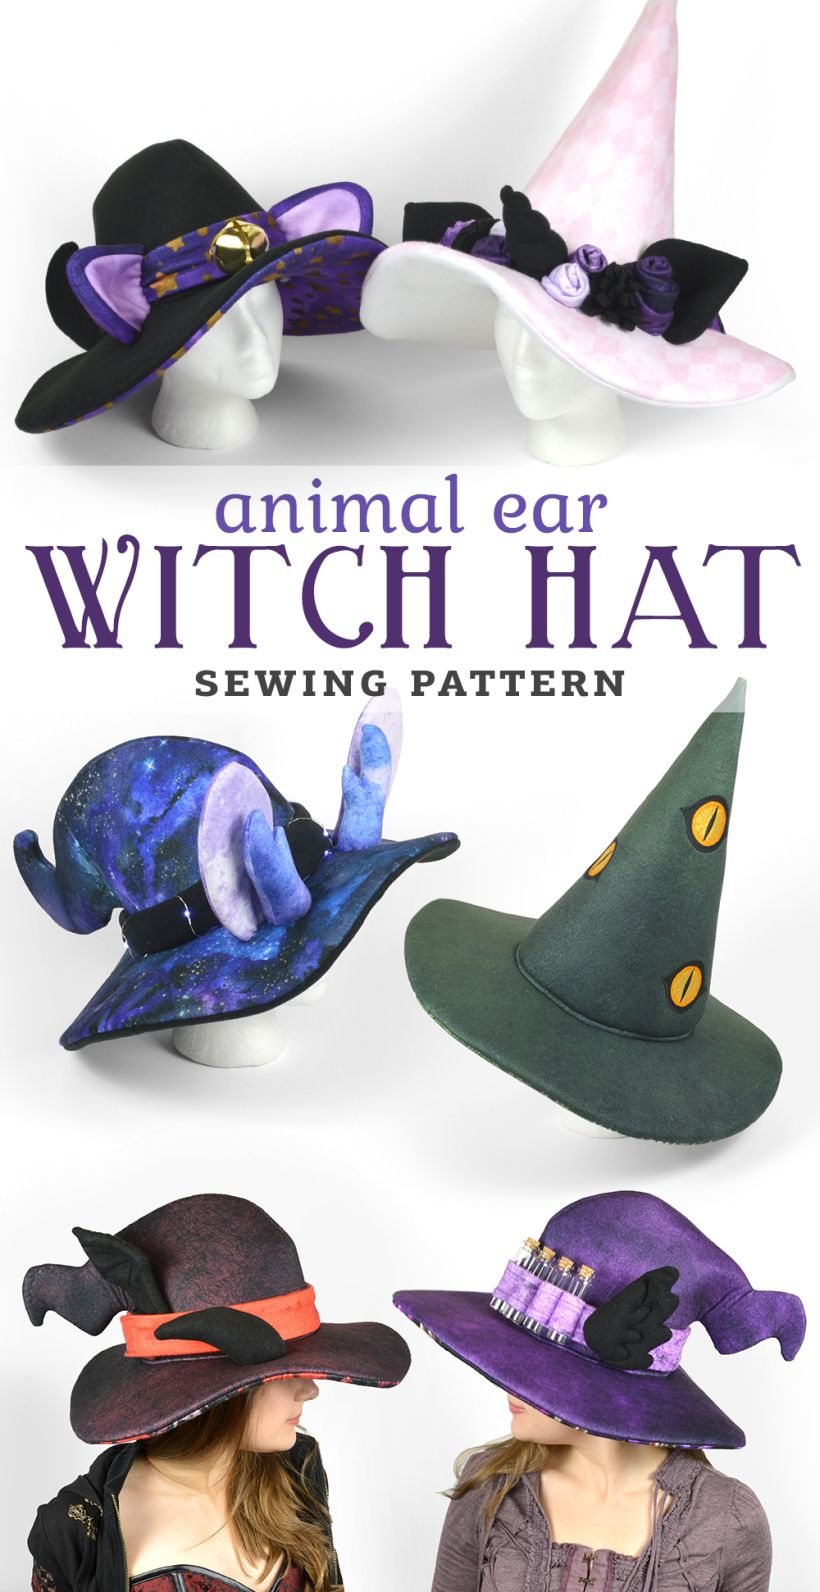 New Shop Pattern! Animal Ear Witch Hat | Choly Knight #crownscrocheted